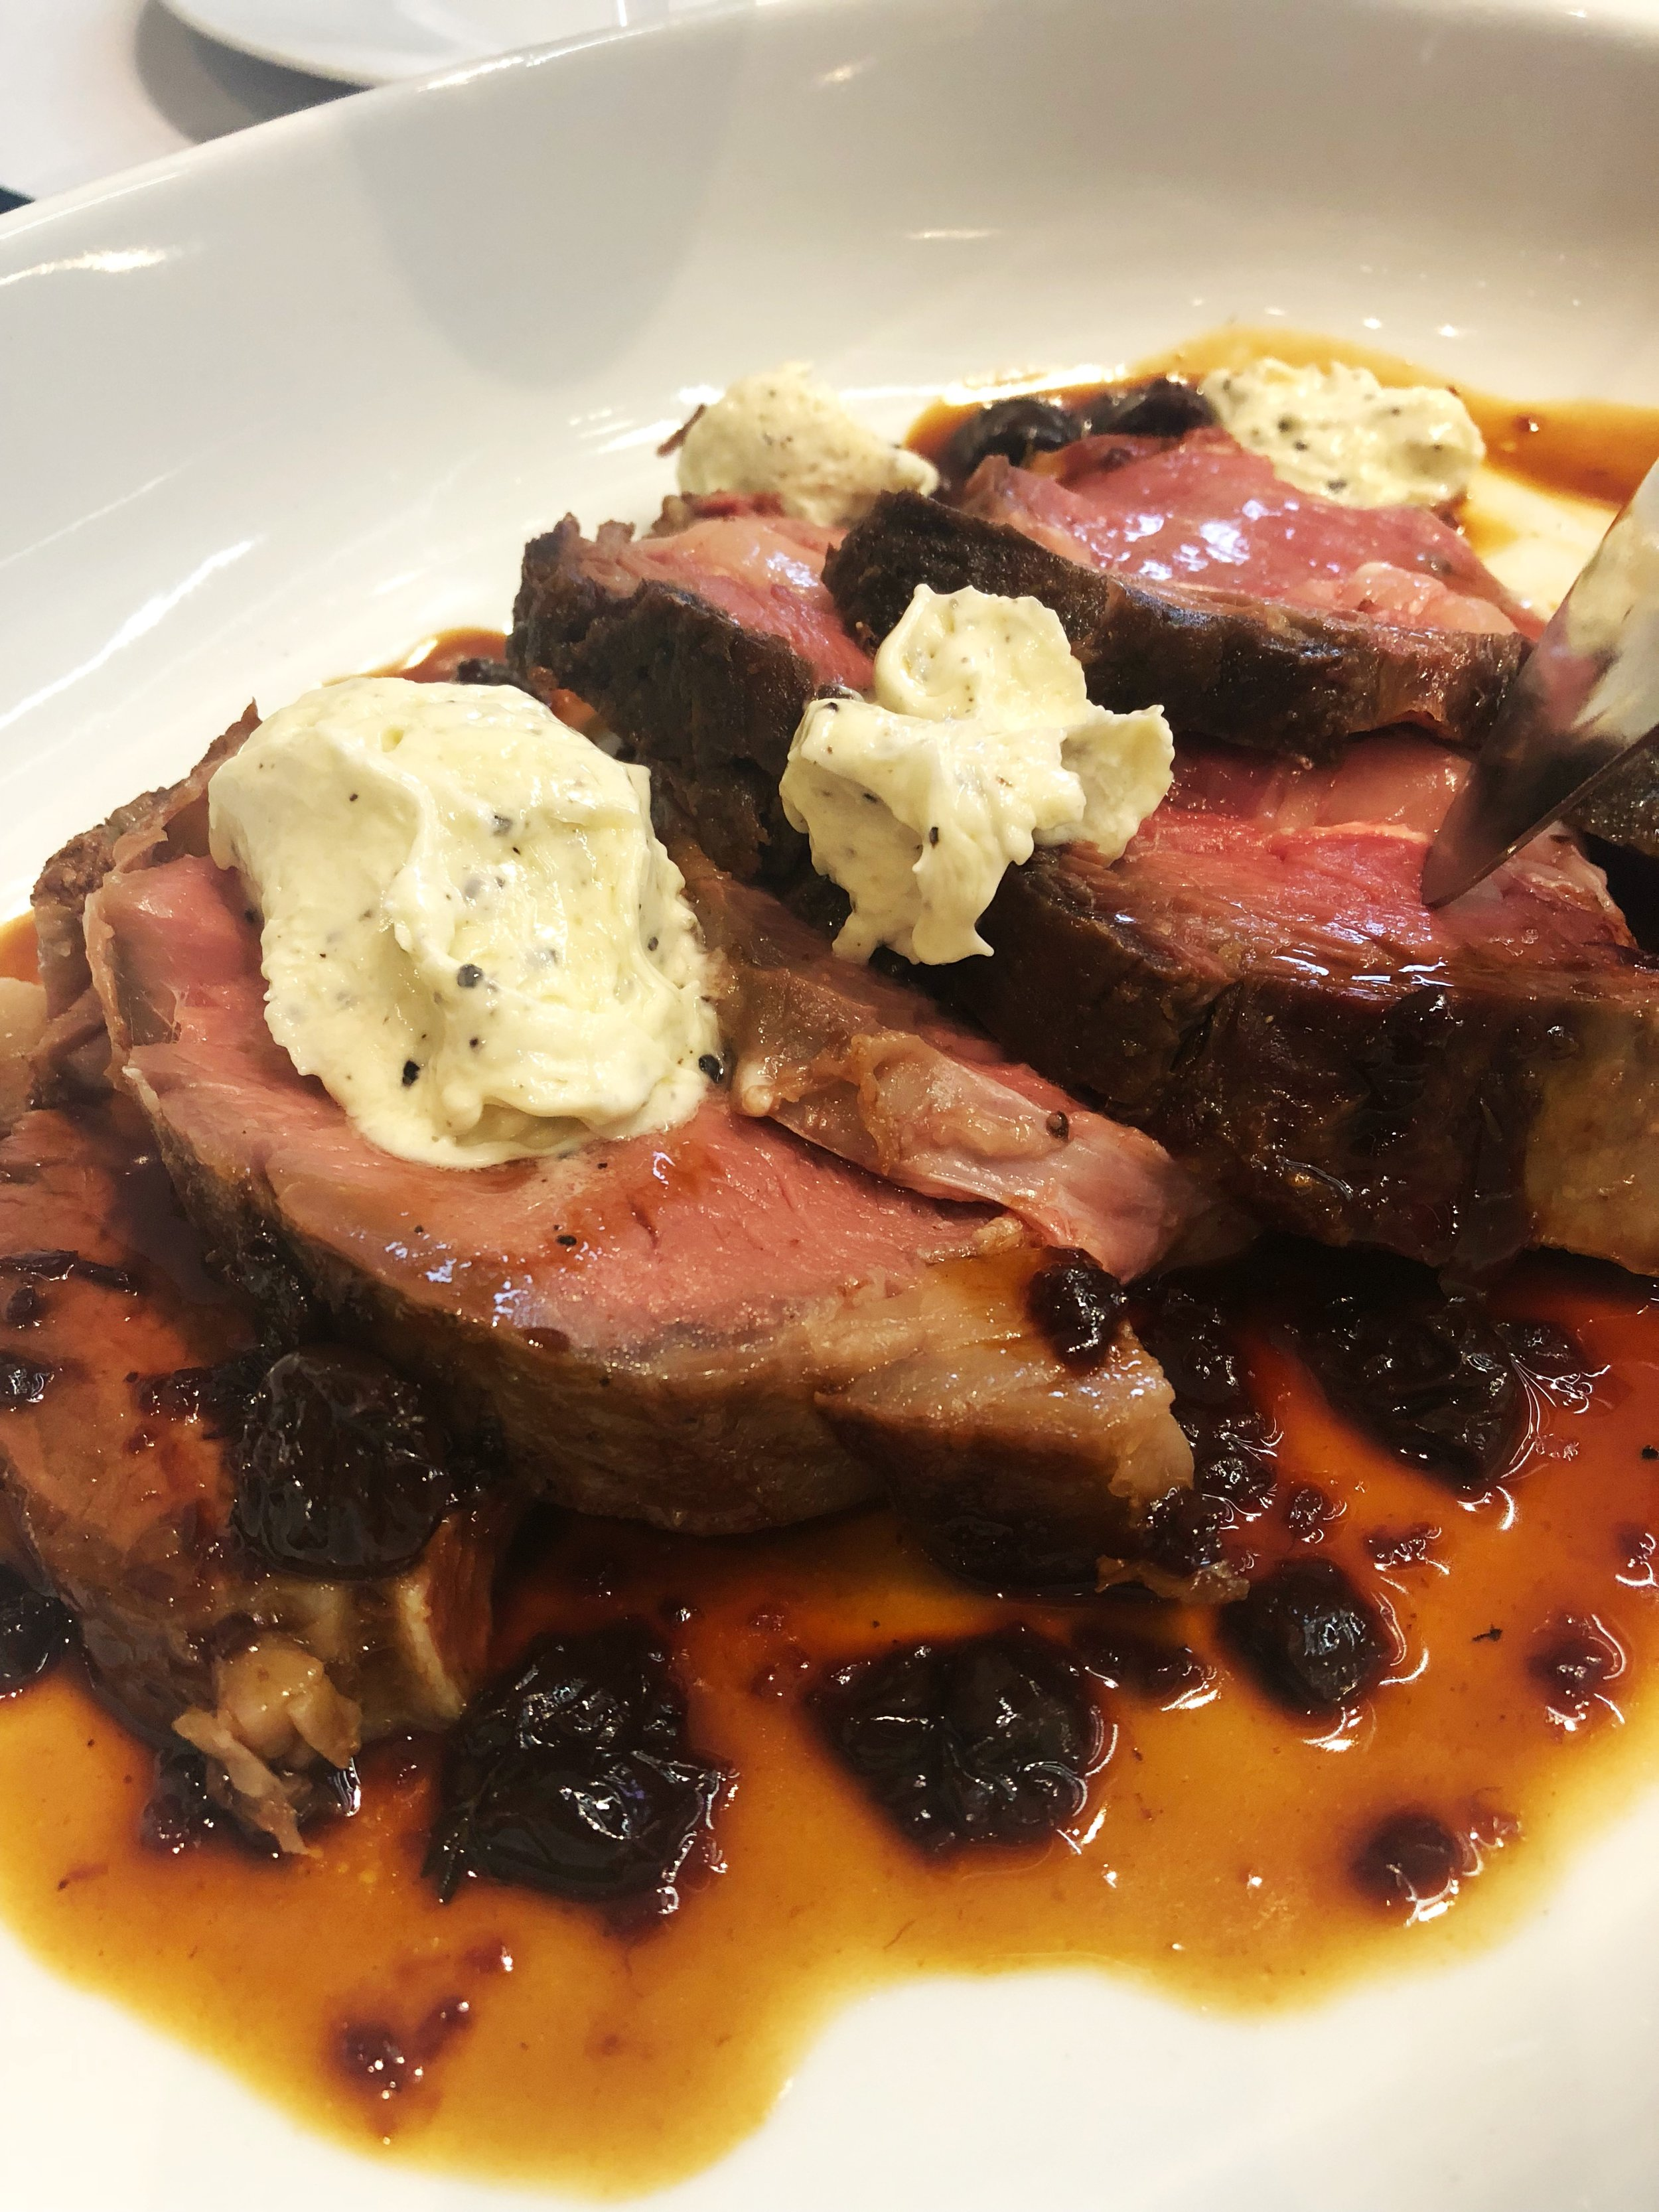 Prime rib with truffle butter and cherry bordelaise from Angie Mar of The Beatrice Inn